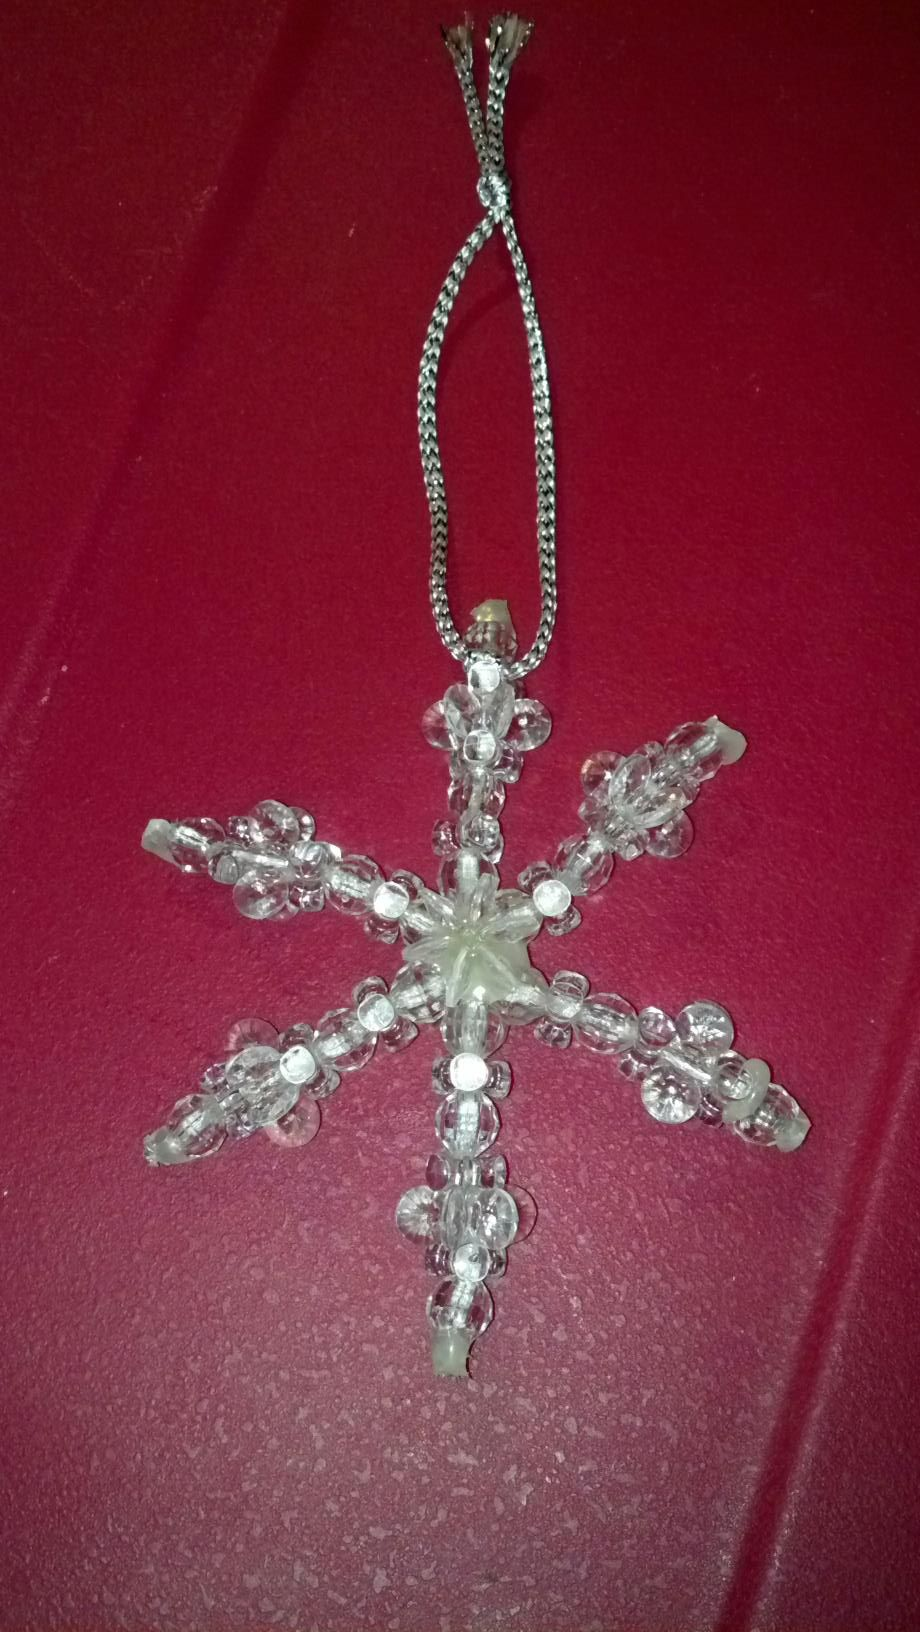 Bead Snowflake Http Www Ecrafty Com Casearch Aspx Searchterm Snowflake Beaded Snowflakes Beaded Ornaments Applique Quilting